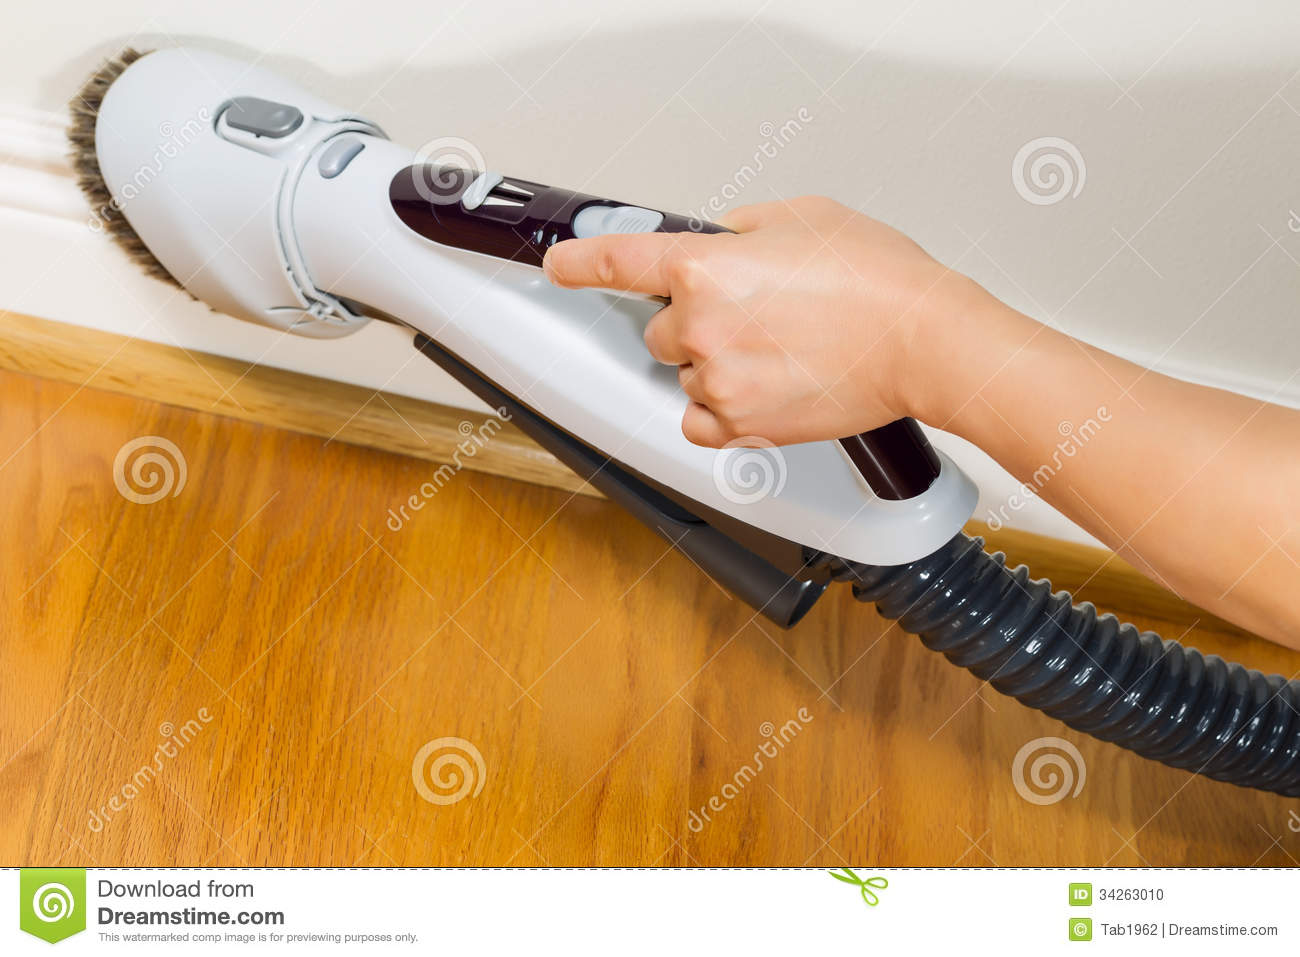 Cleaning Trim next to wooden floors - Cleaning Trim Next To Wooden Floors Stock Photo - Image: 34263010